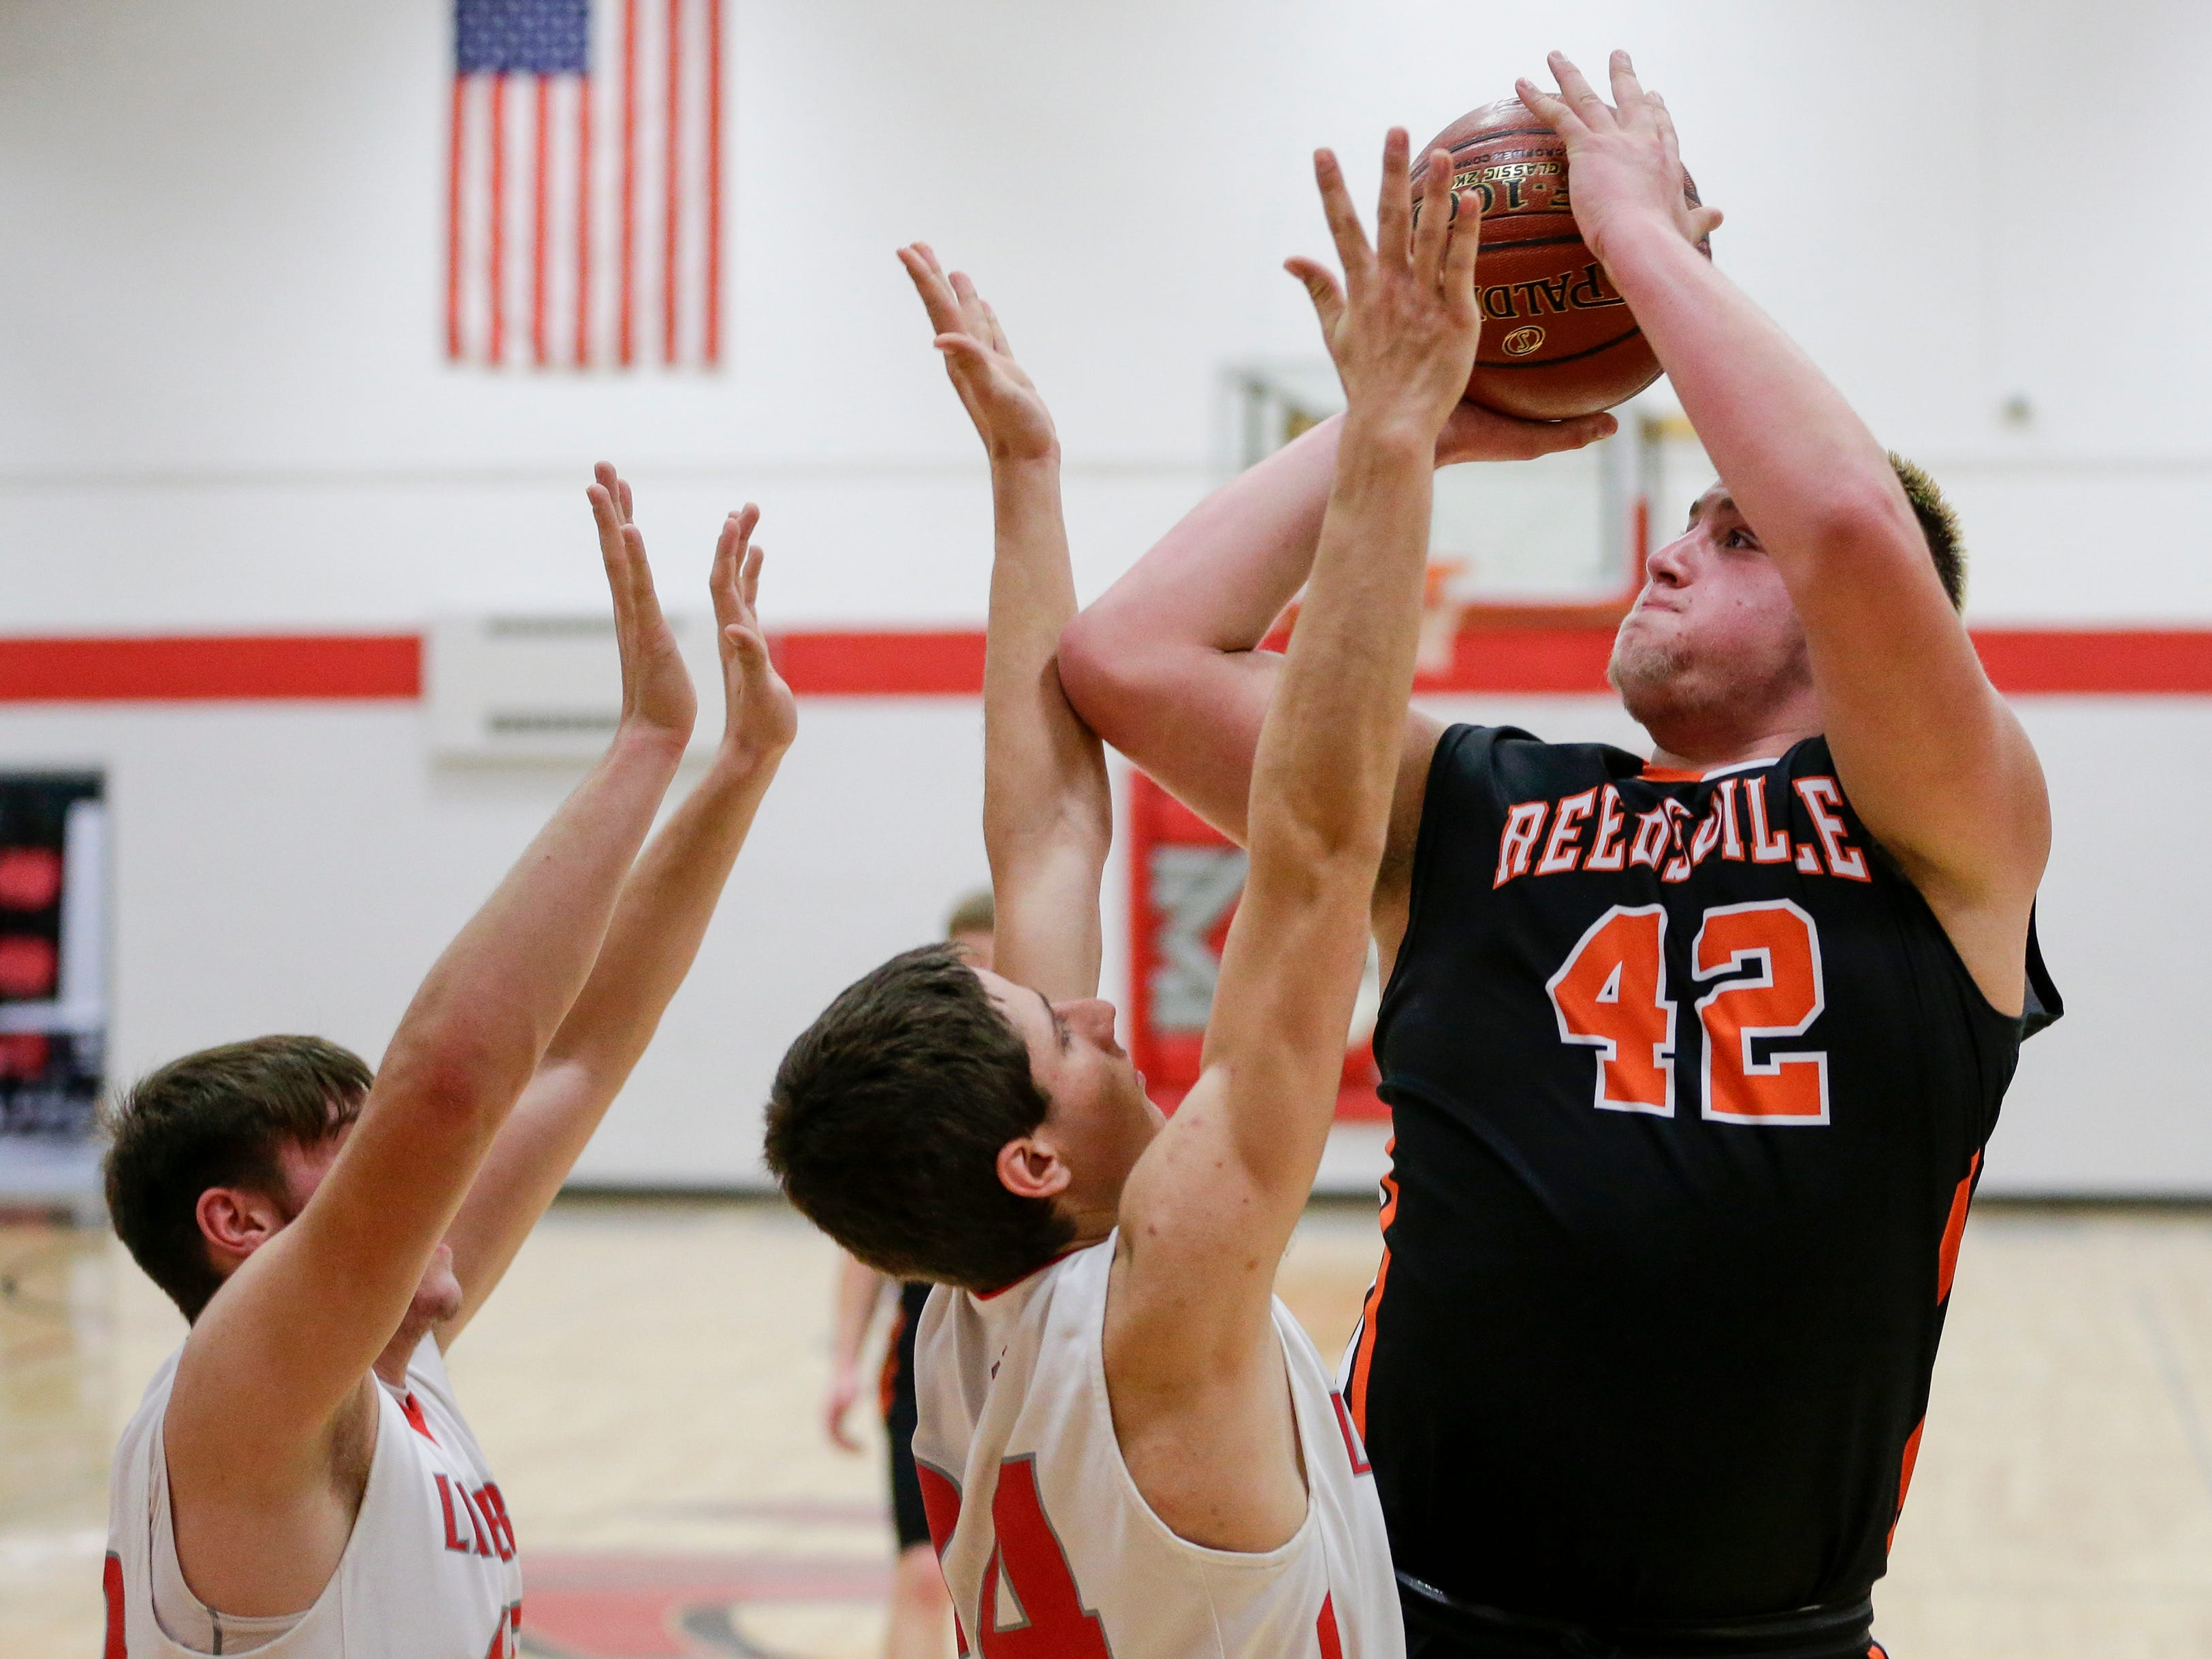 Reedsville's Austin Schmidt puts up a short jump shot against Manitowoc Lutheran at Manitowoc Lutheran High School Thursday, December 20, 2018, in Manitowoc, Wis. Joshua Clark/USA TODAY NETWORK-Wisconsin